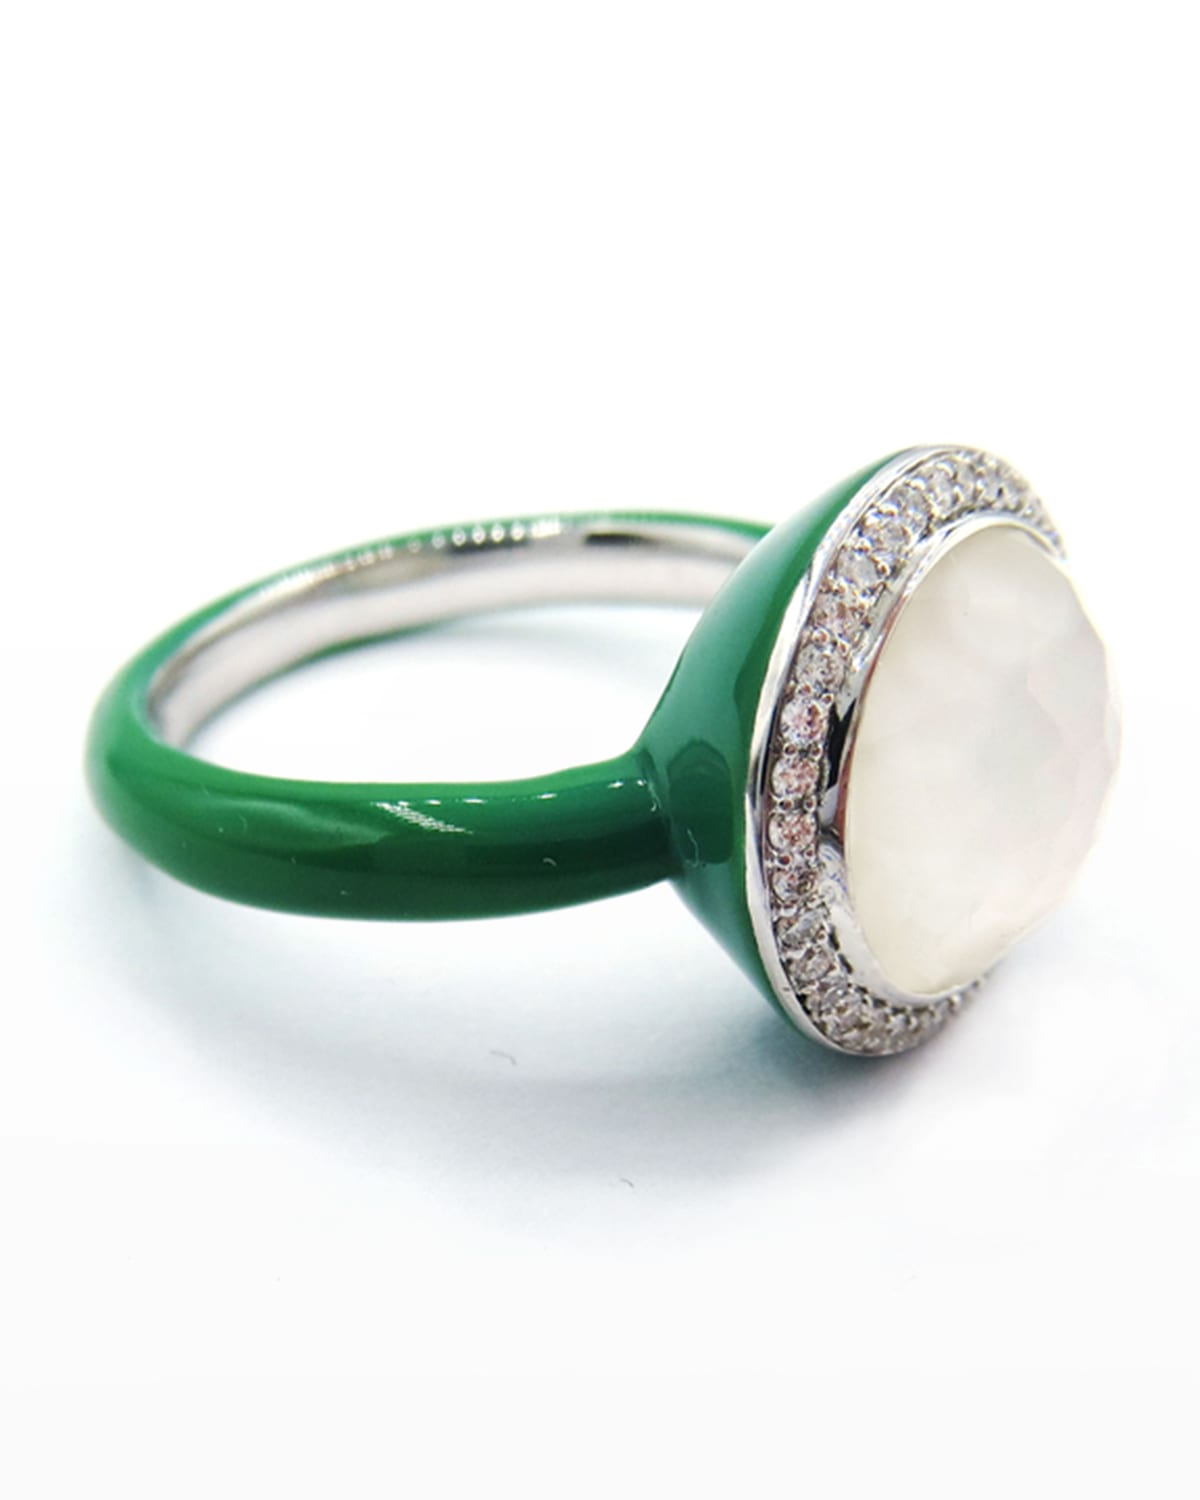 Lollipop Carnevale Ring in Sterling Silver with Mother-of-Pearl Doublets and Ceramic